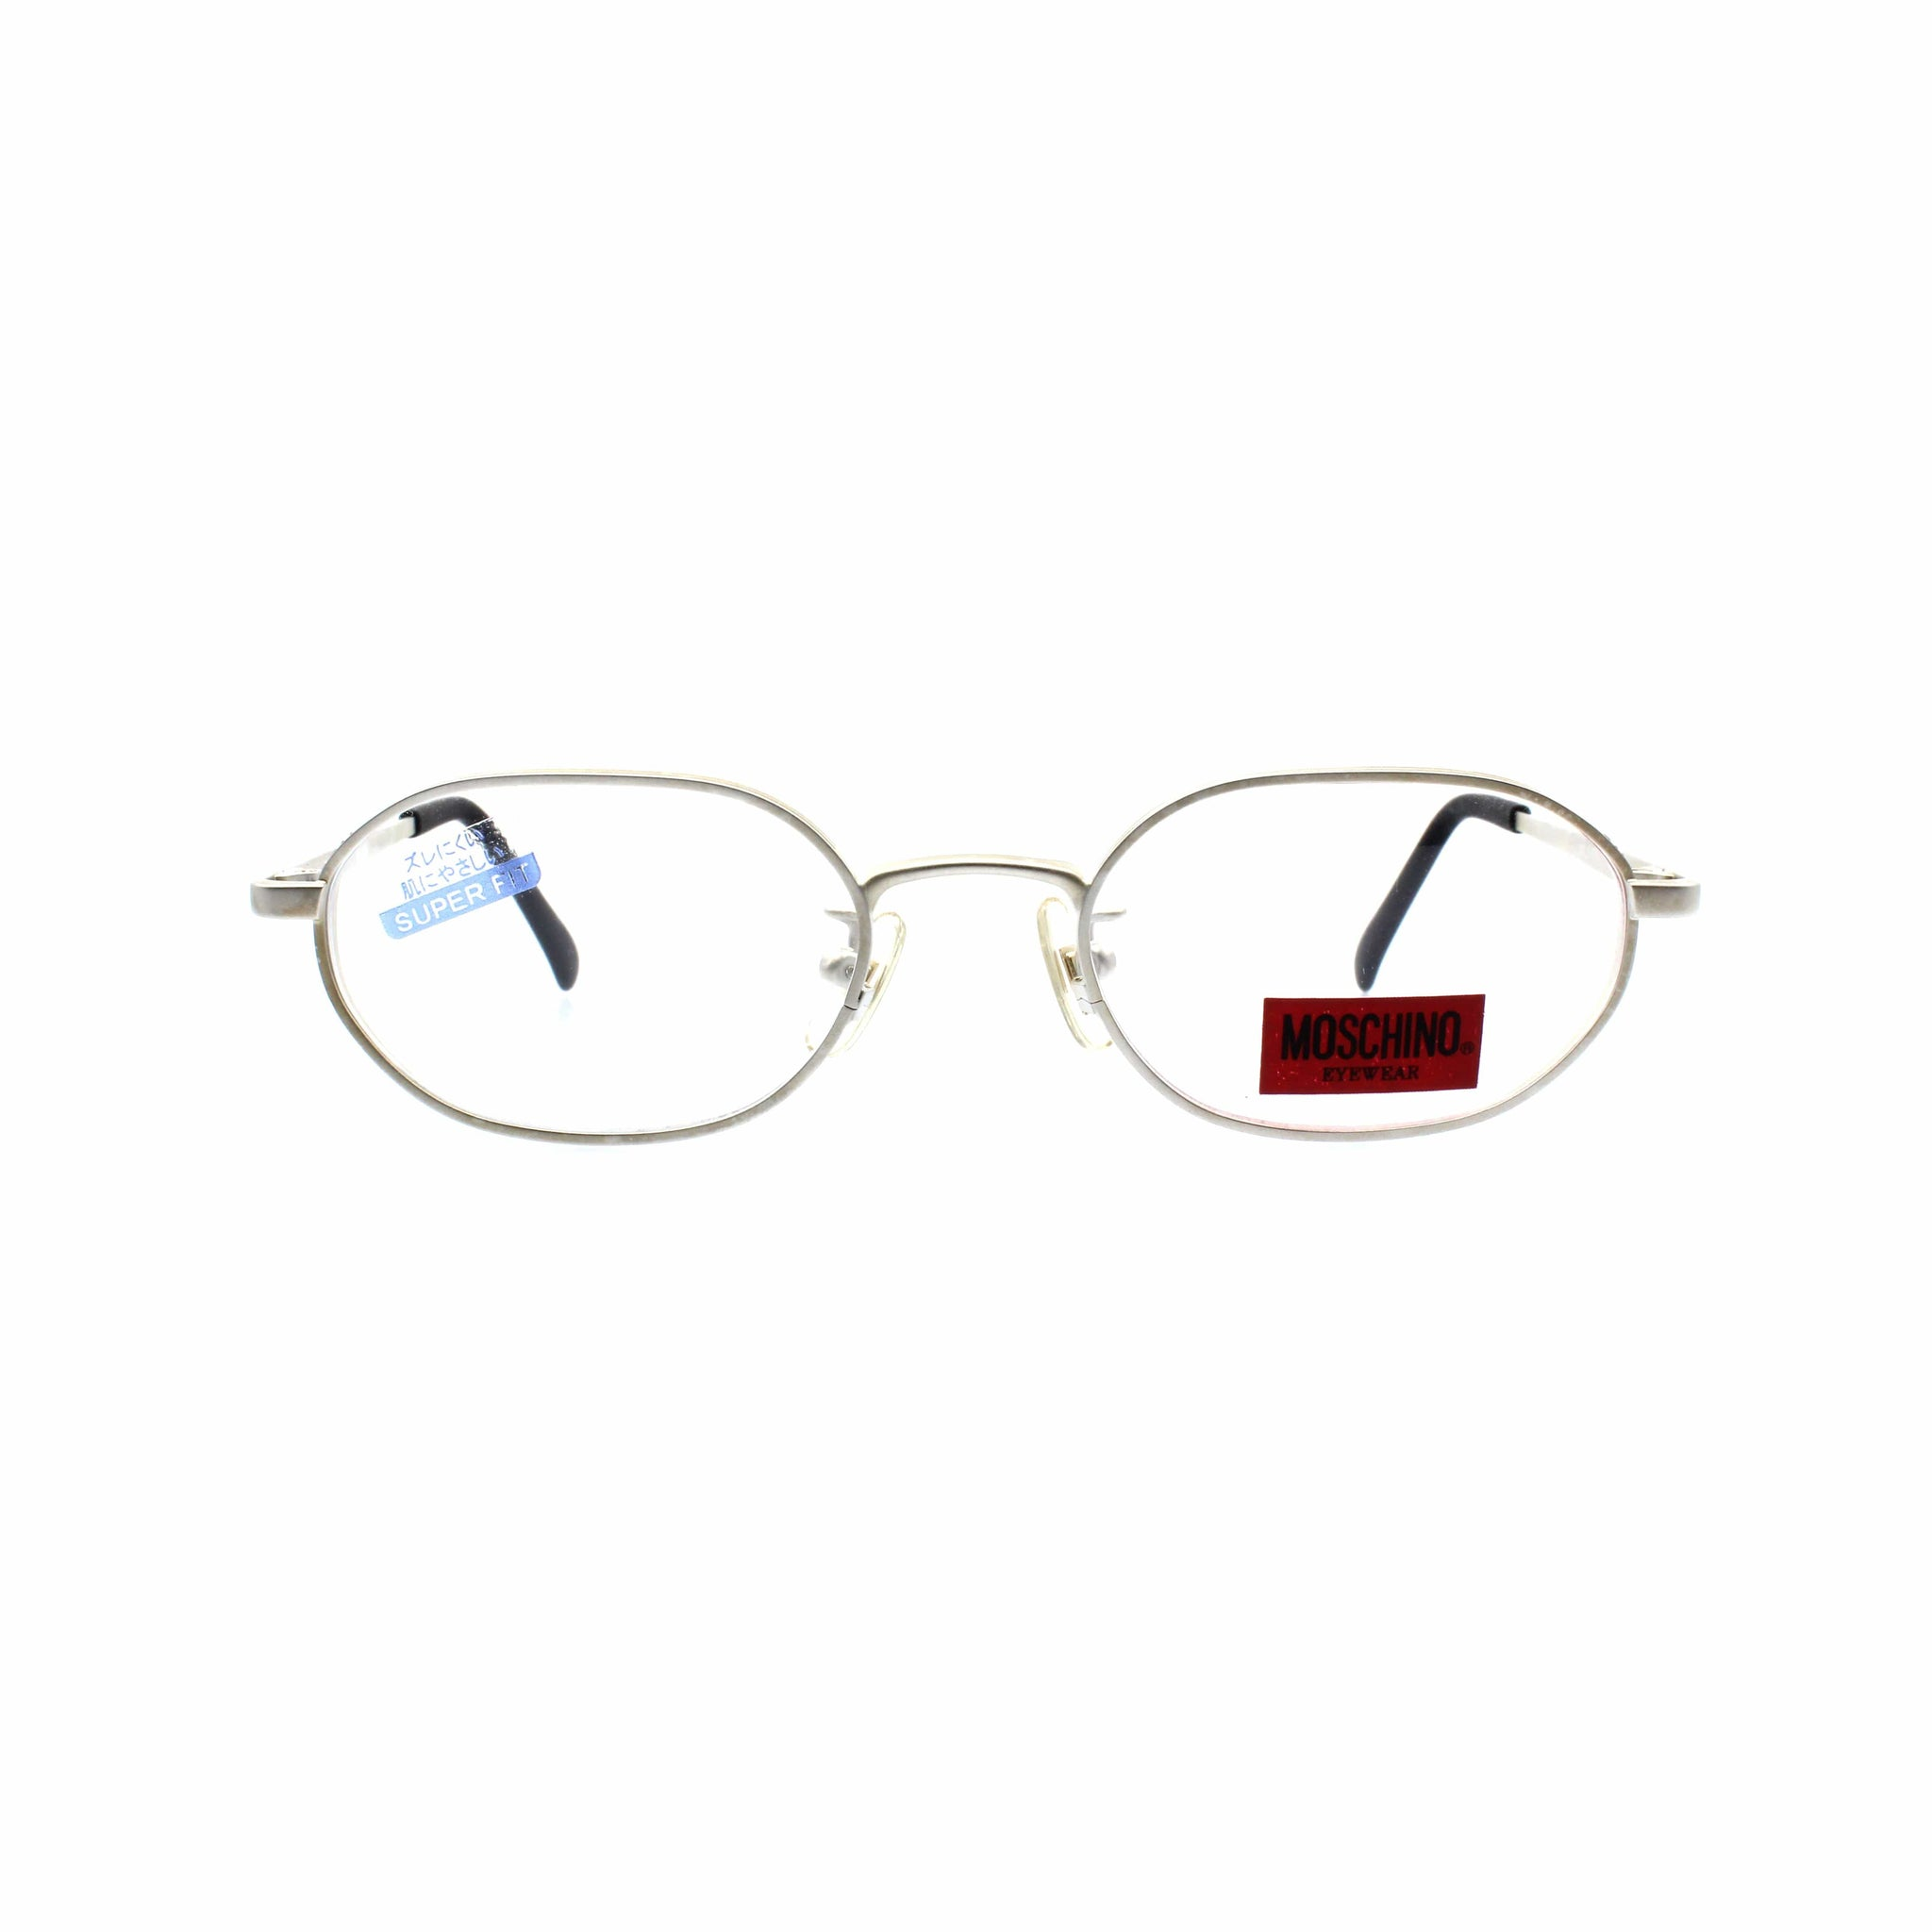 Silver Vintage Moschino MO5830 Glasses RSTKD Vintage